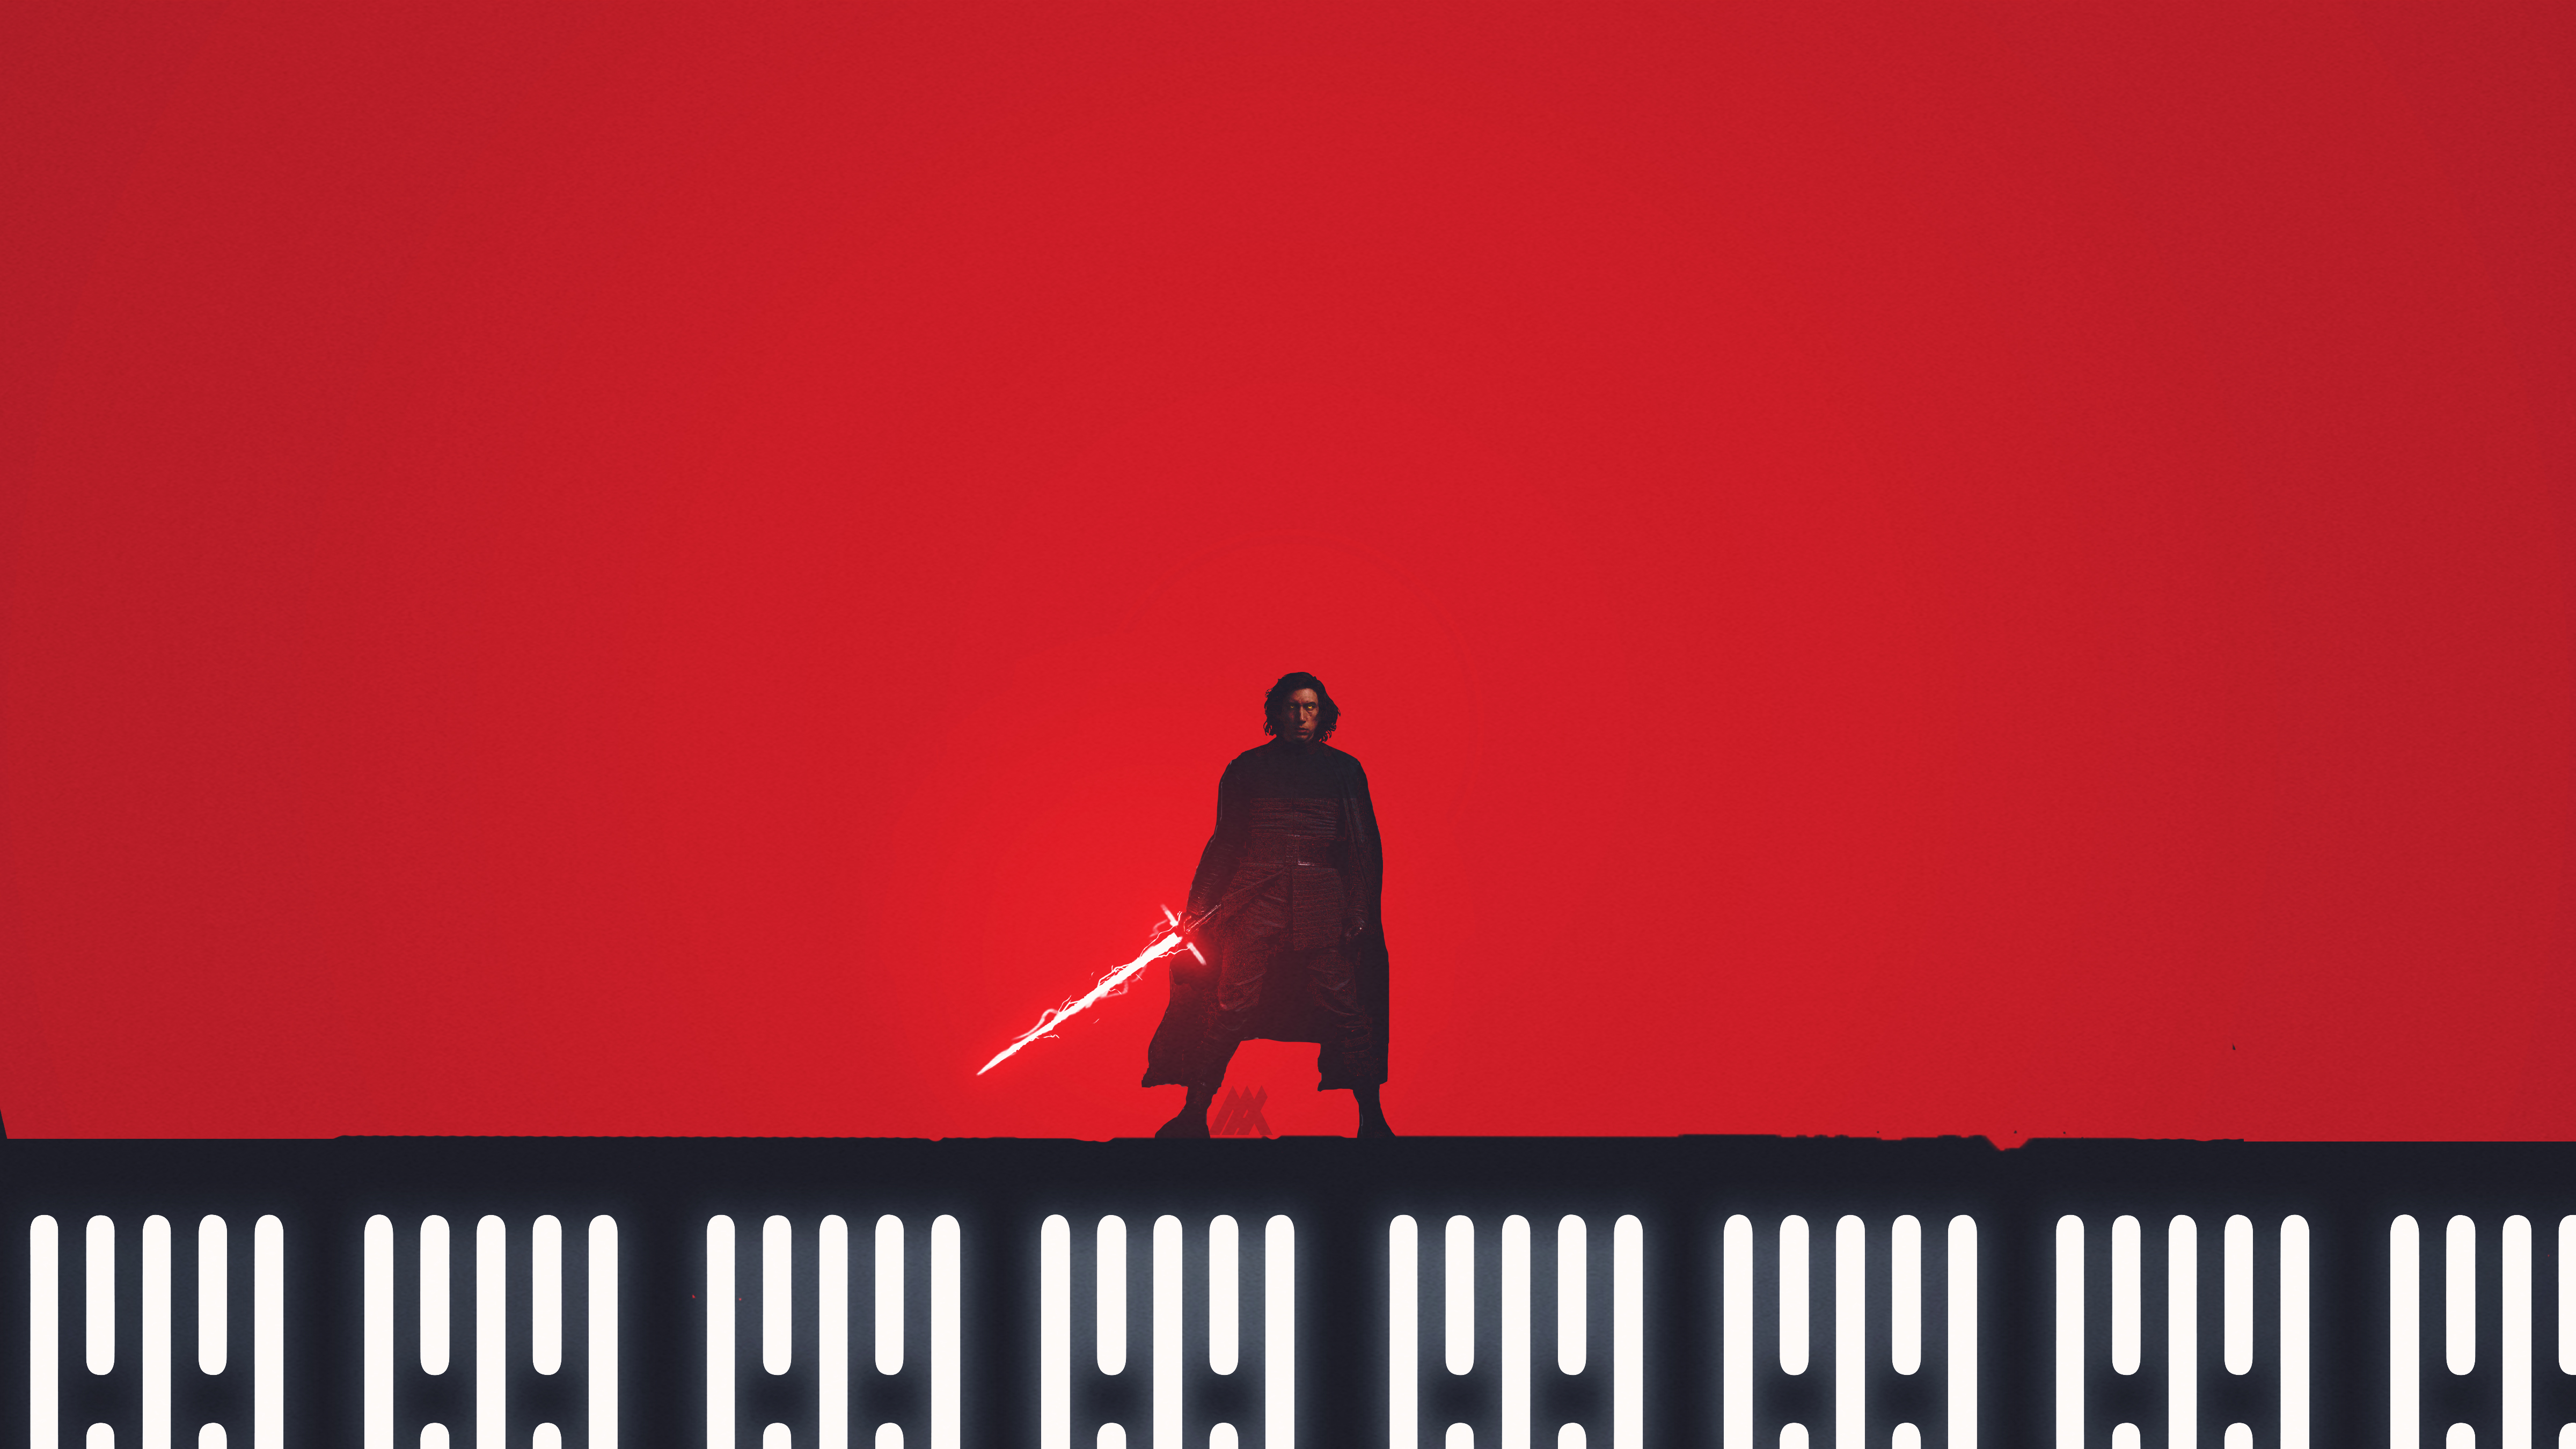 Star Wars The Last Jedi Hd Wallpapers Pictures Images